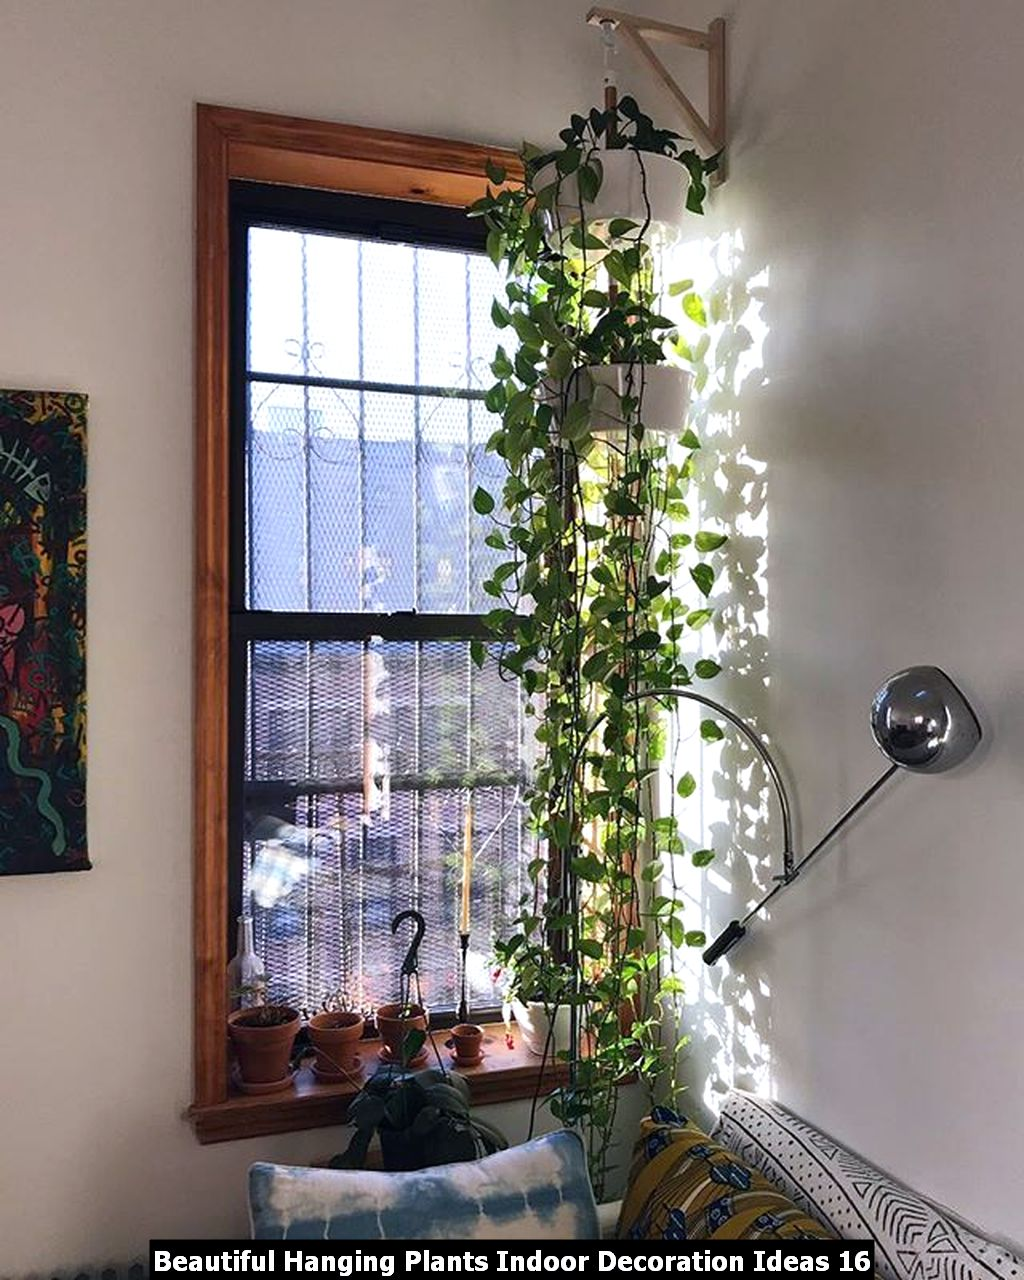 Beautiful Hanging Plants Indoor Decoration Ideas 16